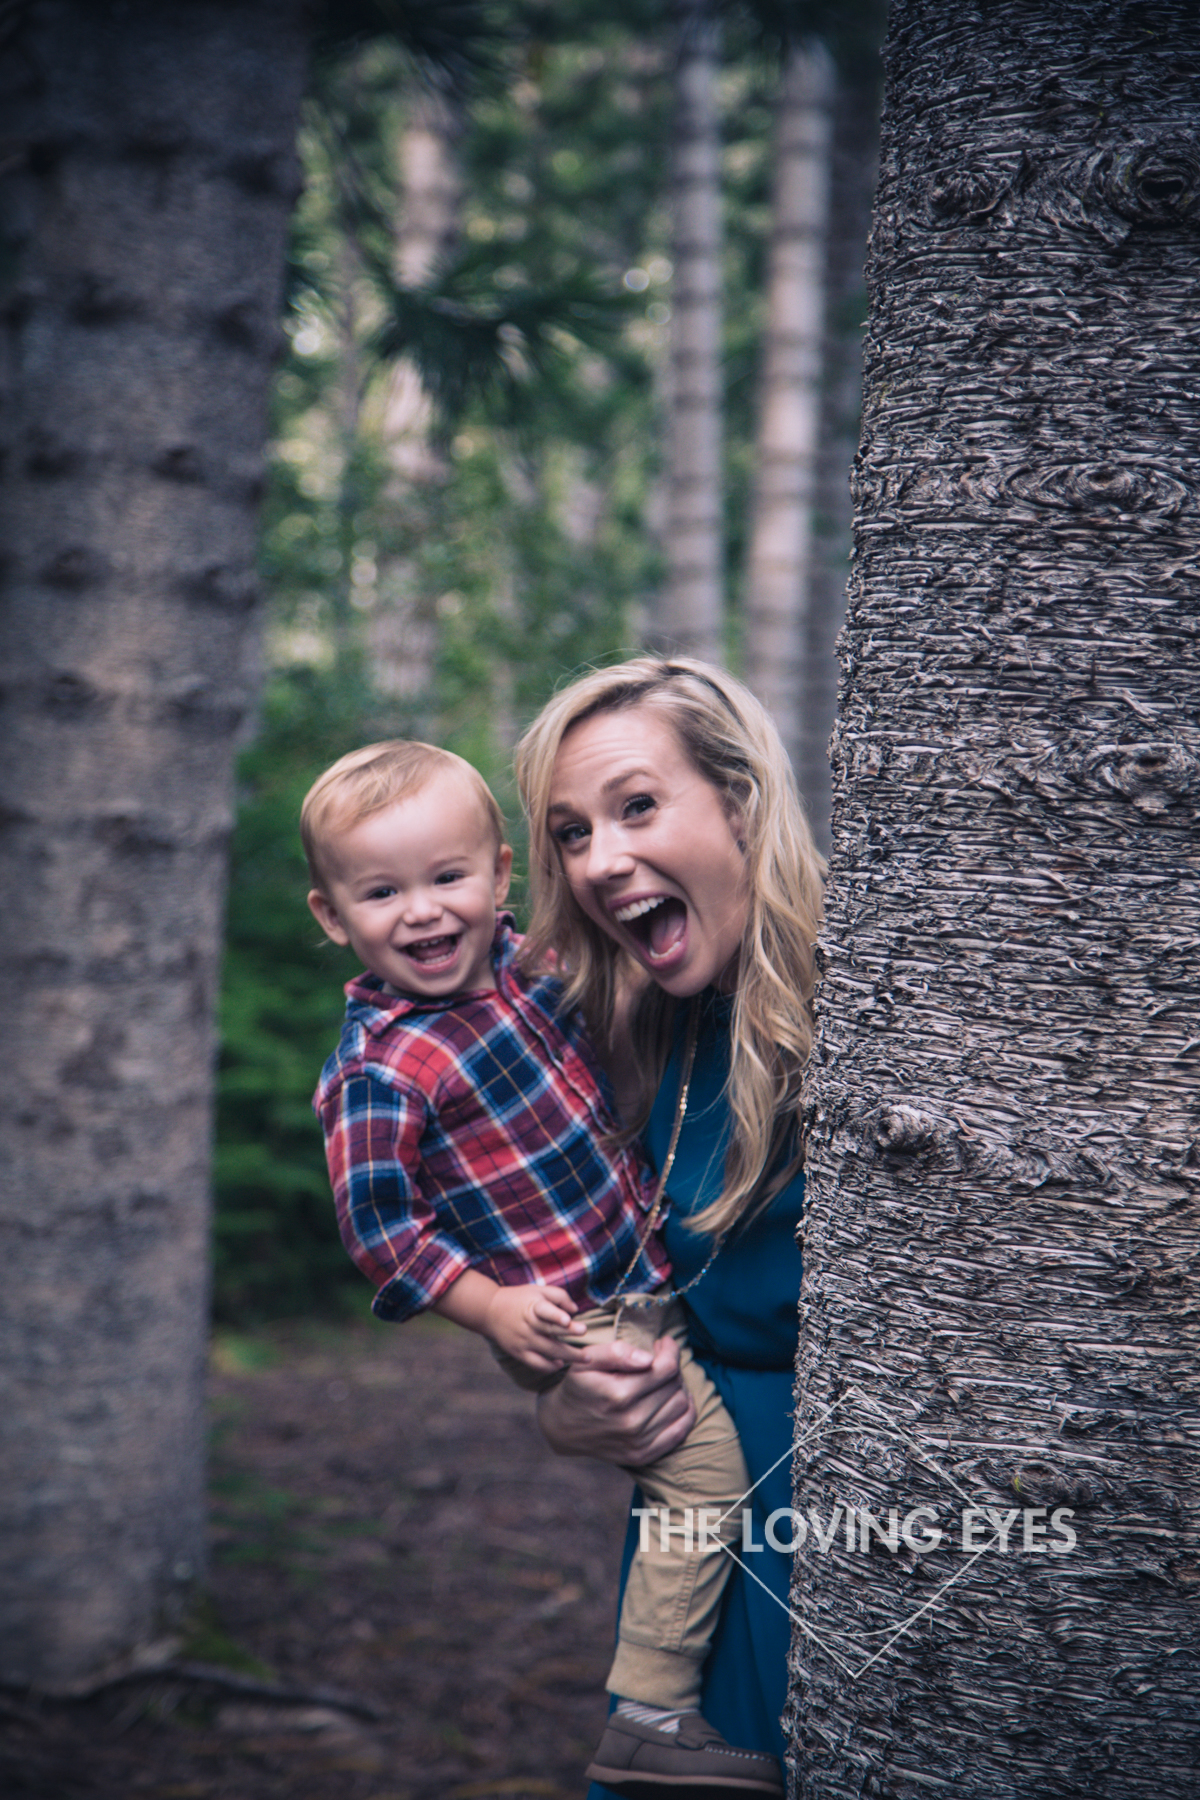 Silly Photo of Mom and Son